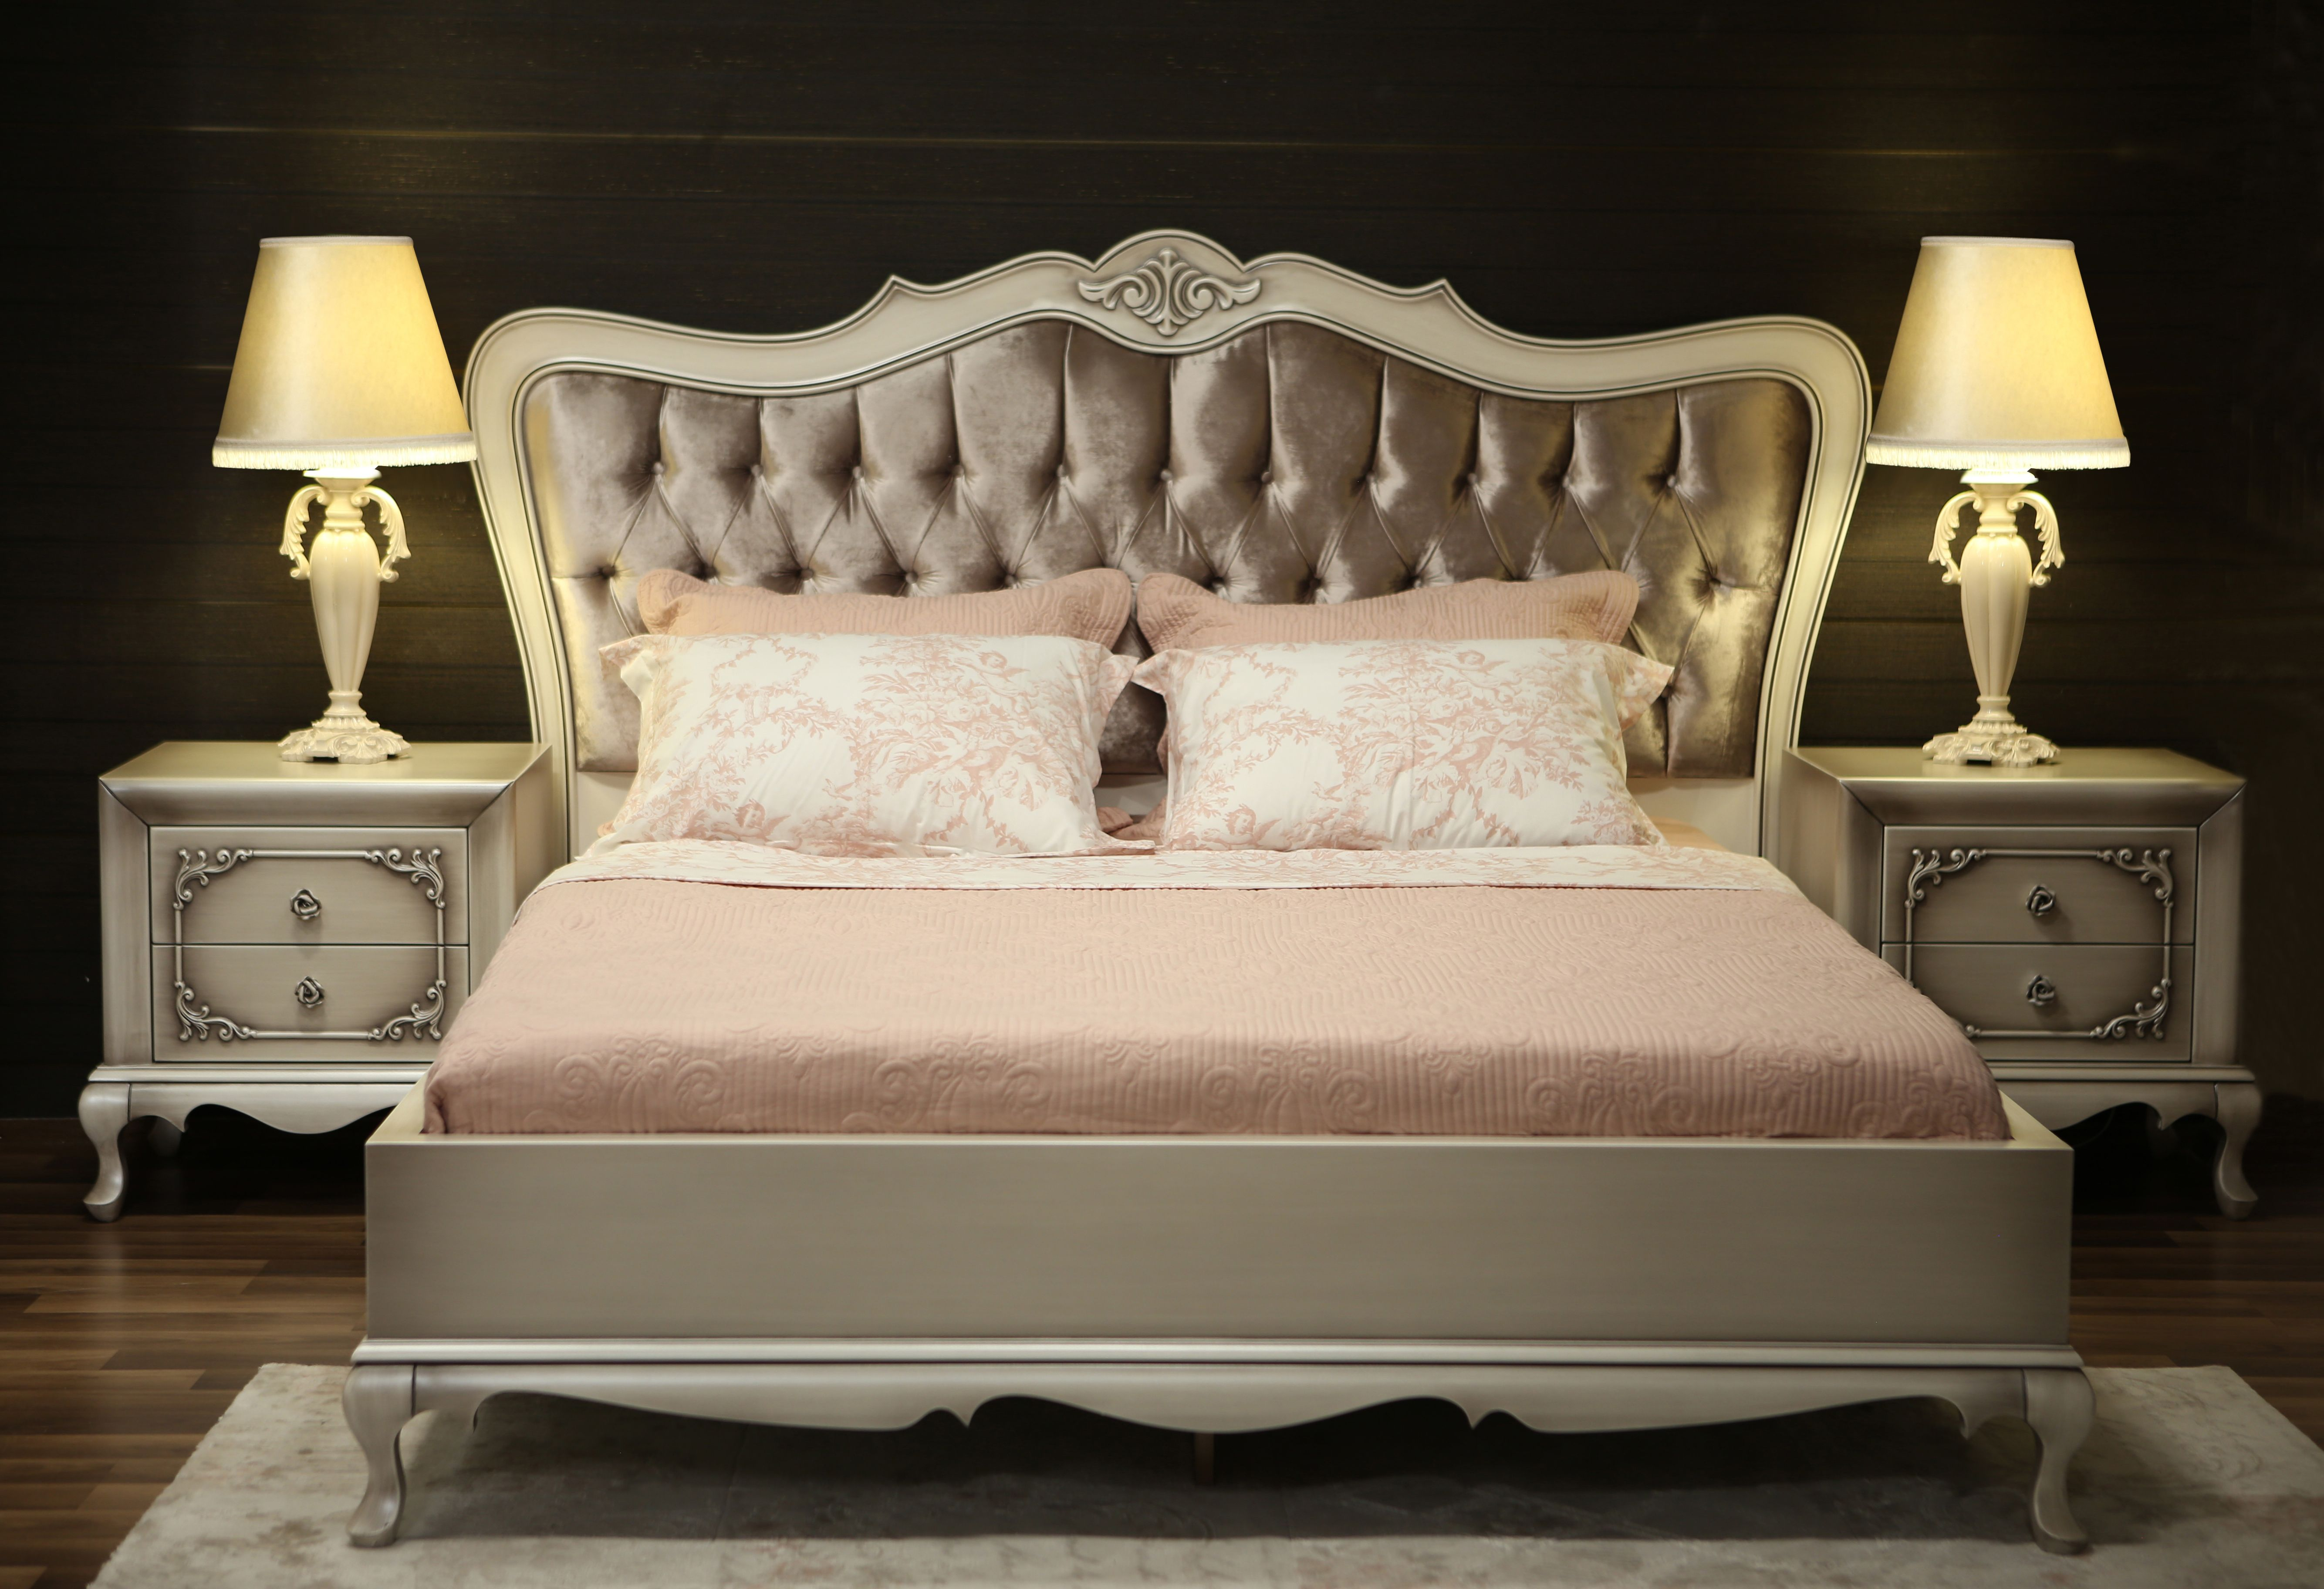 Master bedroom bed  Pin by Iris Concept on Iris ConceptBedroom Furniture  Pinterest